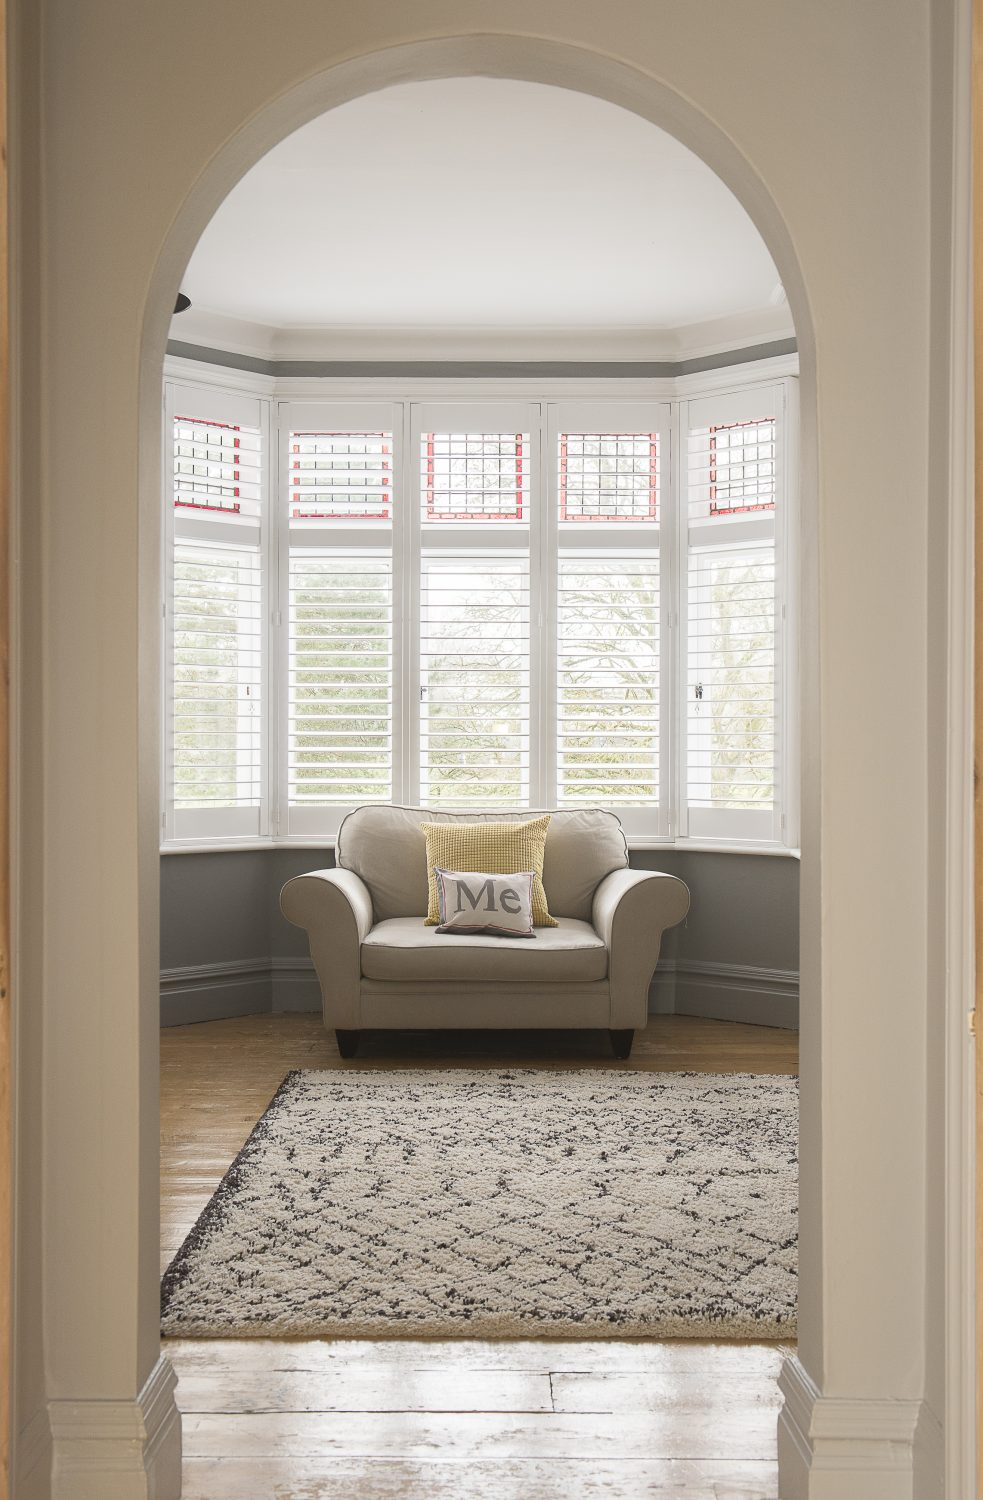 """In the master bedroom is a bay window and oversized armchair or 'love seat'. """"We've had the armchair for more than 10 years, along with the leather sofa downstairs. They were in the first flat we had together,"""" says Caroline"""